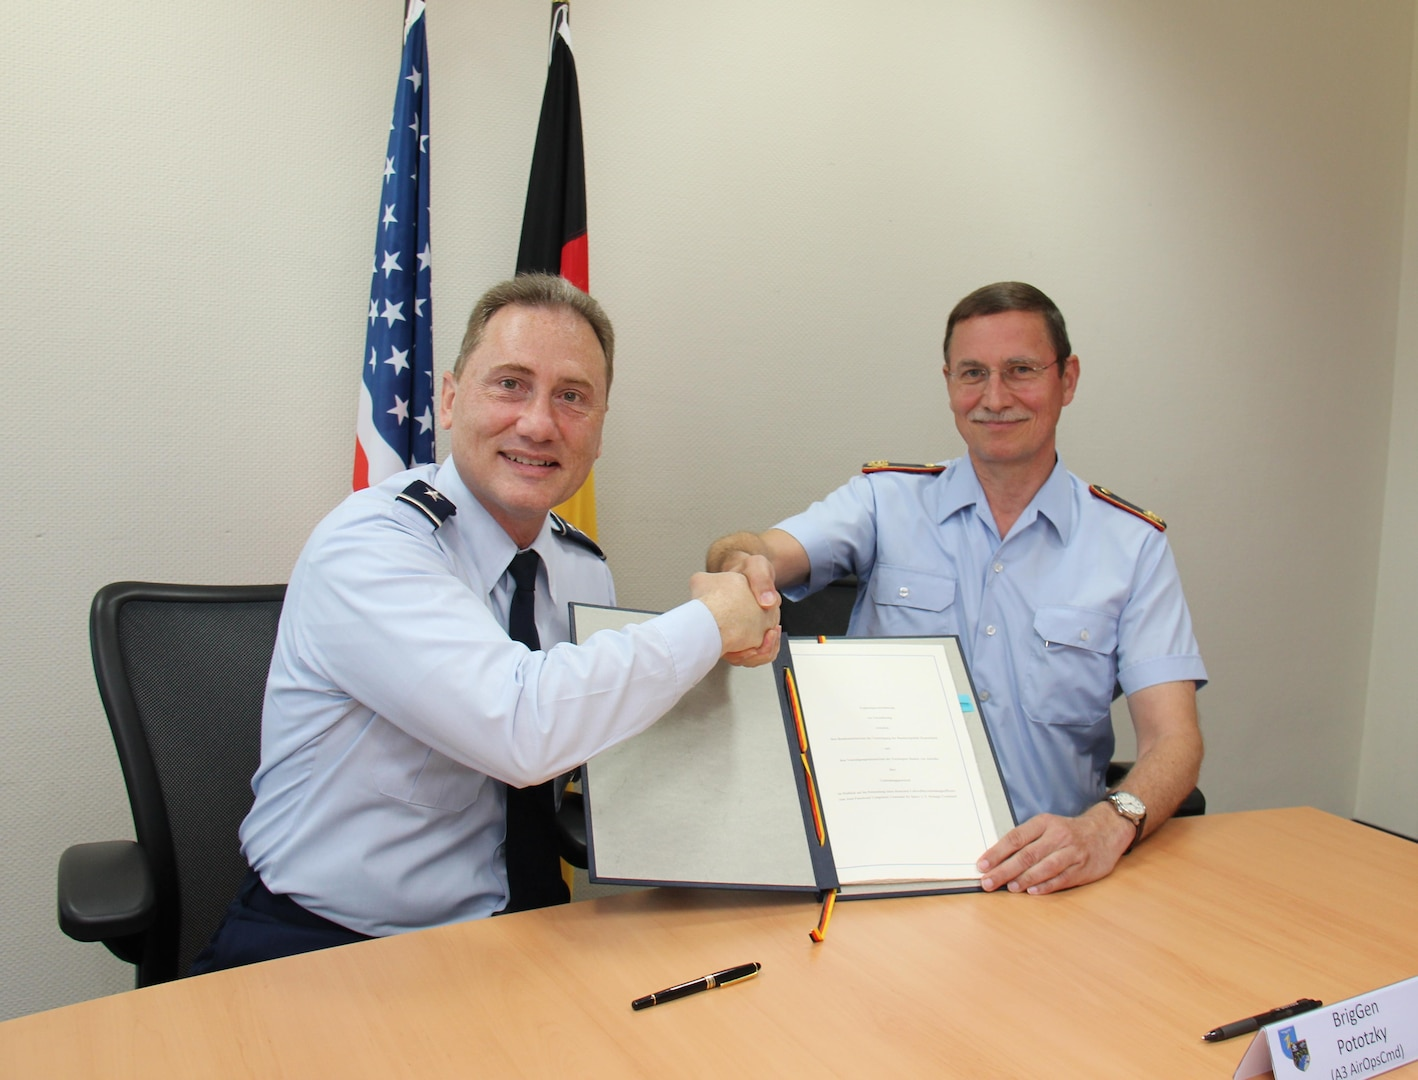 U.S. Air Force Maj. Gen. Clinton Crosier (left), U.S. Strategic Command (USSTRATCOM) director of plans and policy, and German Luftwaffe (air force) Brig. Gen. Burkhart Pototzky, department head and head of the Luftwaffe Operations Center, meet for the signing of a memorandum of agreement (MoA) in Uedem, Germany, June 1, 2017. The MoA authorizes, for the first time, the assignment of a German liaison officer to USSTRATCOM's Joint Functional Component Command for Space under the Multinational Space Collaboration (MSC) effort. The MSC will explore mutual capabilities and identify opportunities for greater integration by co-locating additional allies and partners with U.S. space operators. One of nine Department of Defense unified combatant commands, USSTRATCOM has global strategic missions assigned through the Unified Command Plan that include strategic deterrence, space operations, cyberspace operations, joint electronic warfare, global strike, missile defense, intelligence, and analysis and targeting.